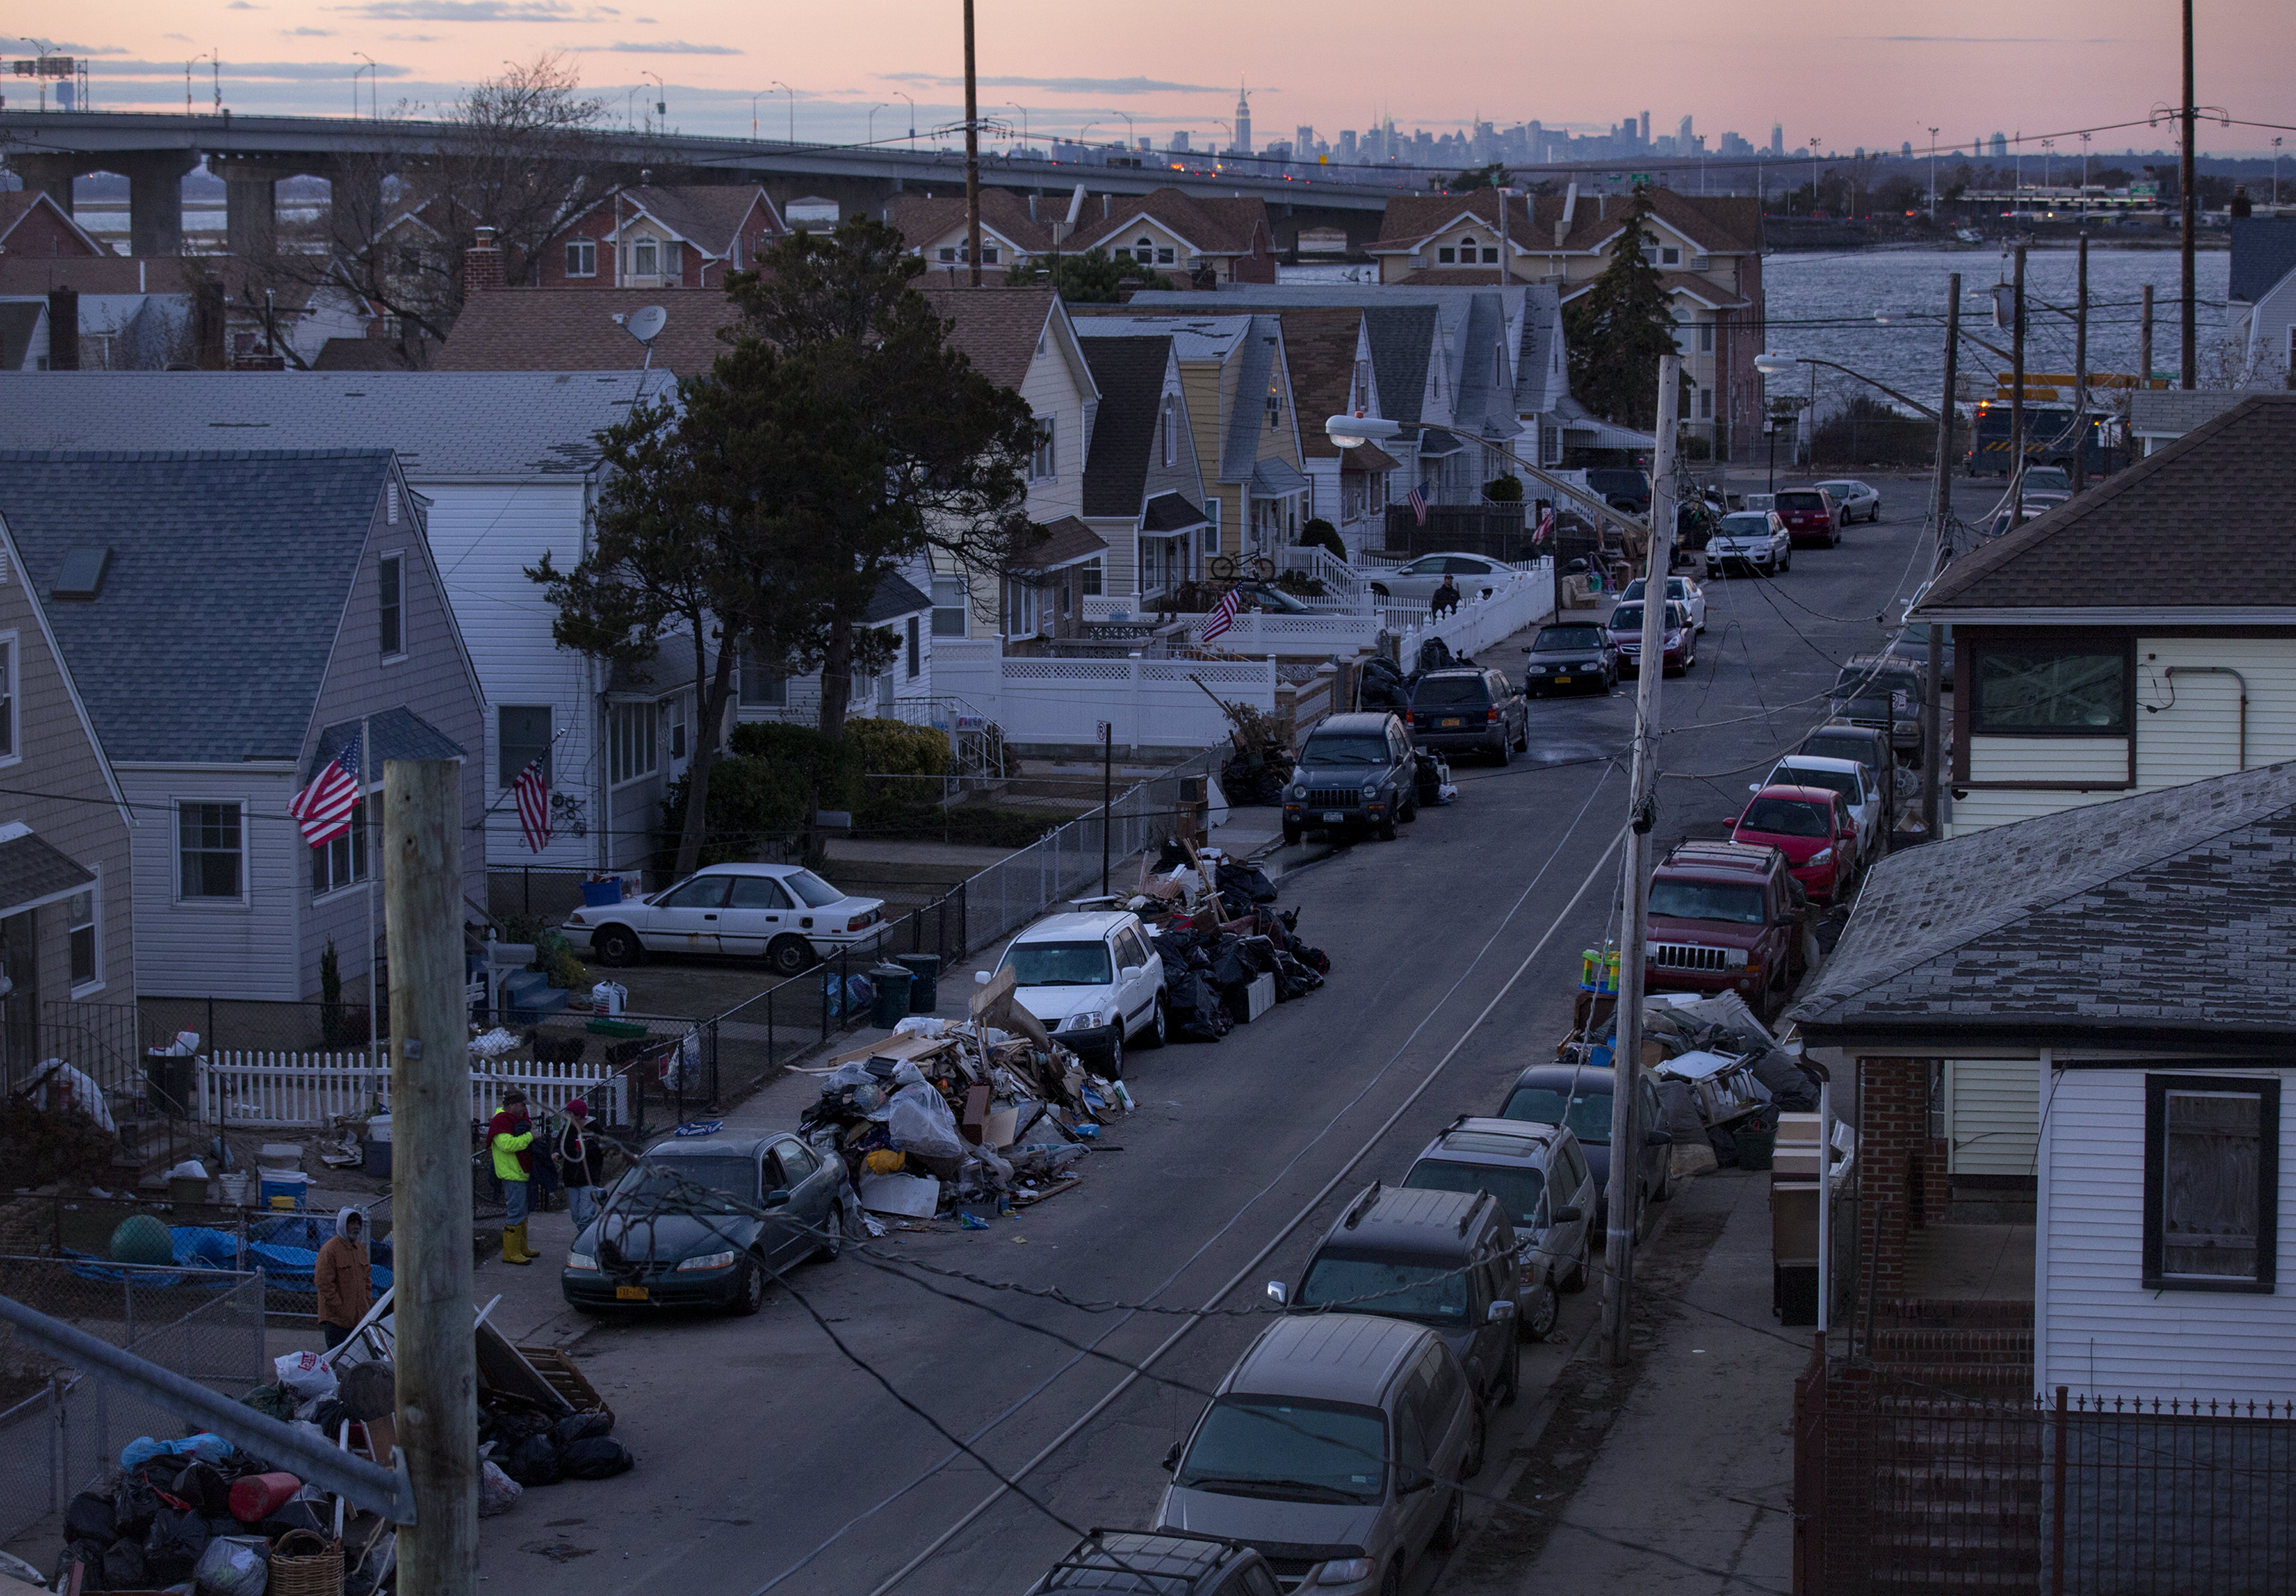 Debris lay in front of homes in a Rockaway neighborhood of the borough of Queens, New York, Monday, Nov. 5, 2012, in the wake of Superstorm Sandy. The Manhattan skyline is seen in the background. (AP Photo/Craig Ruttle)